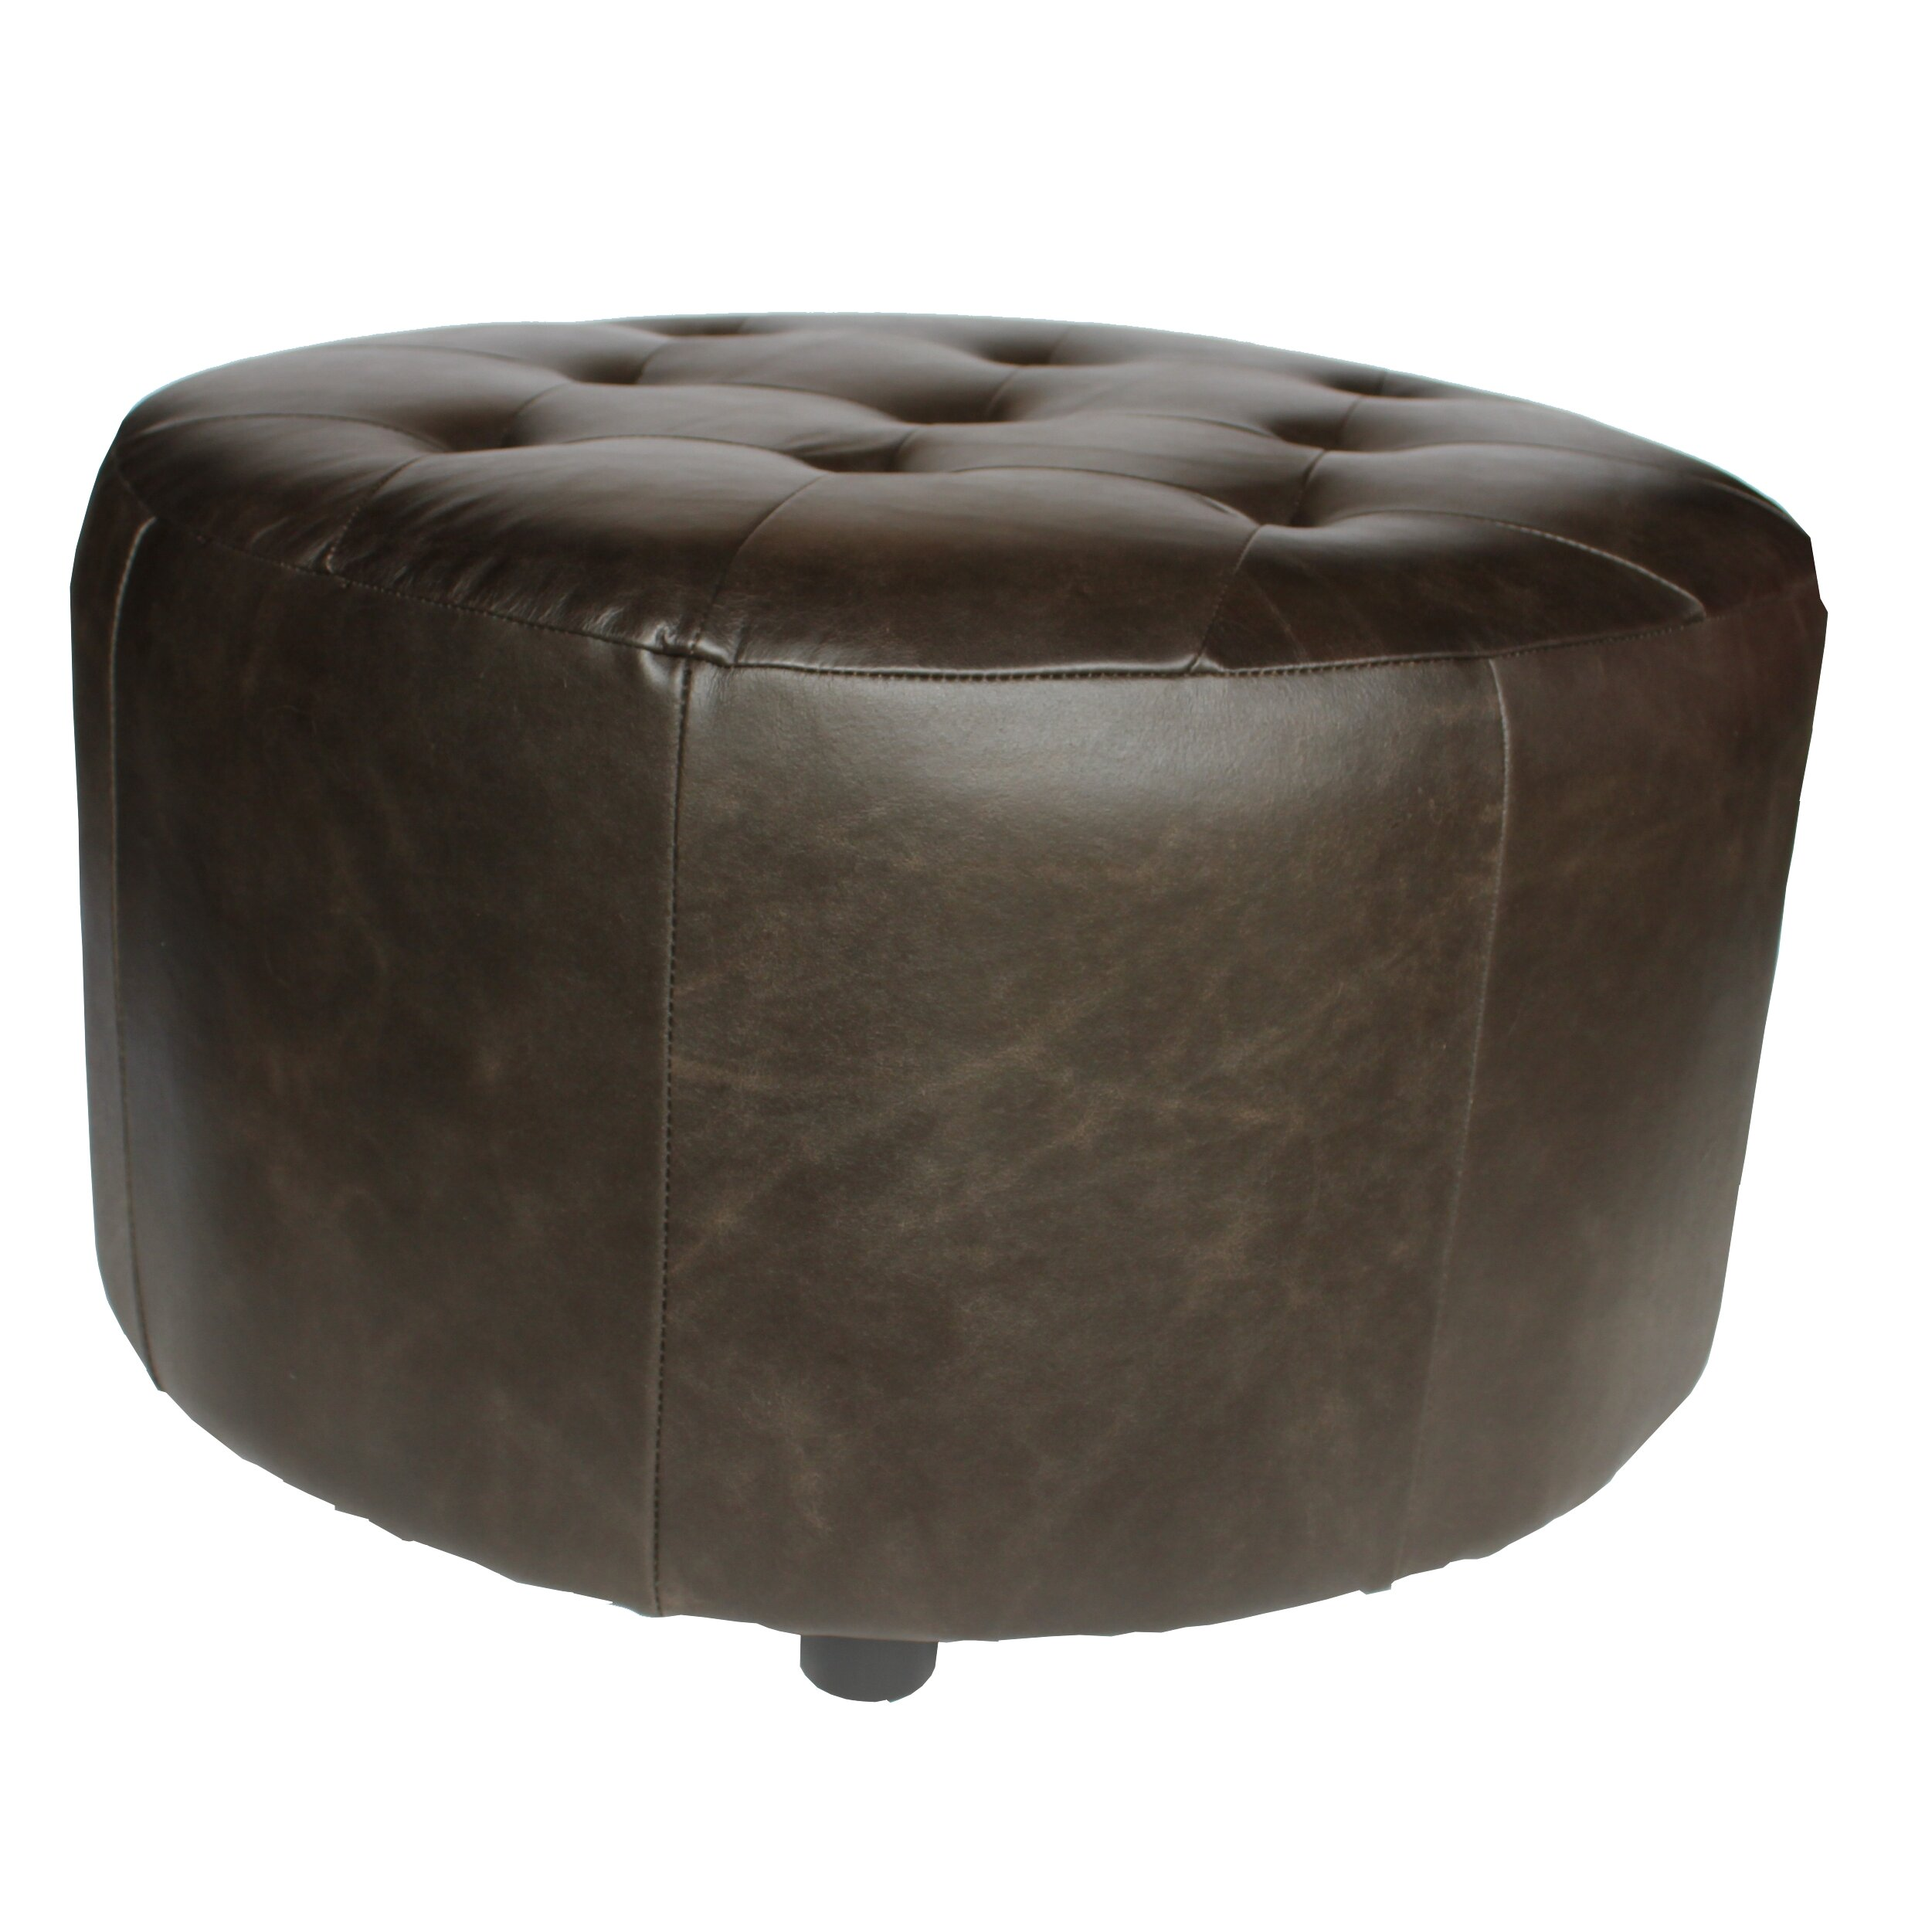 Elegant home fashions arlington leather ottoman reviews for 30 inch round ottoman